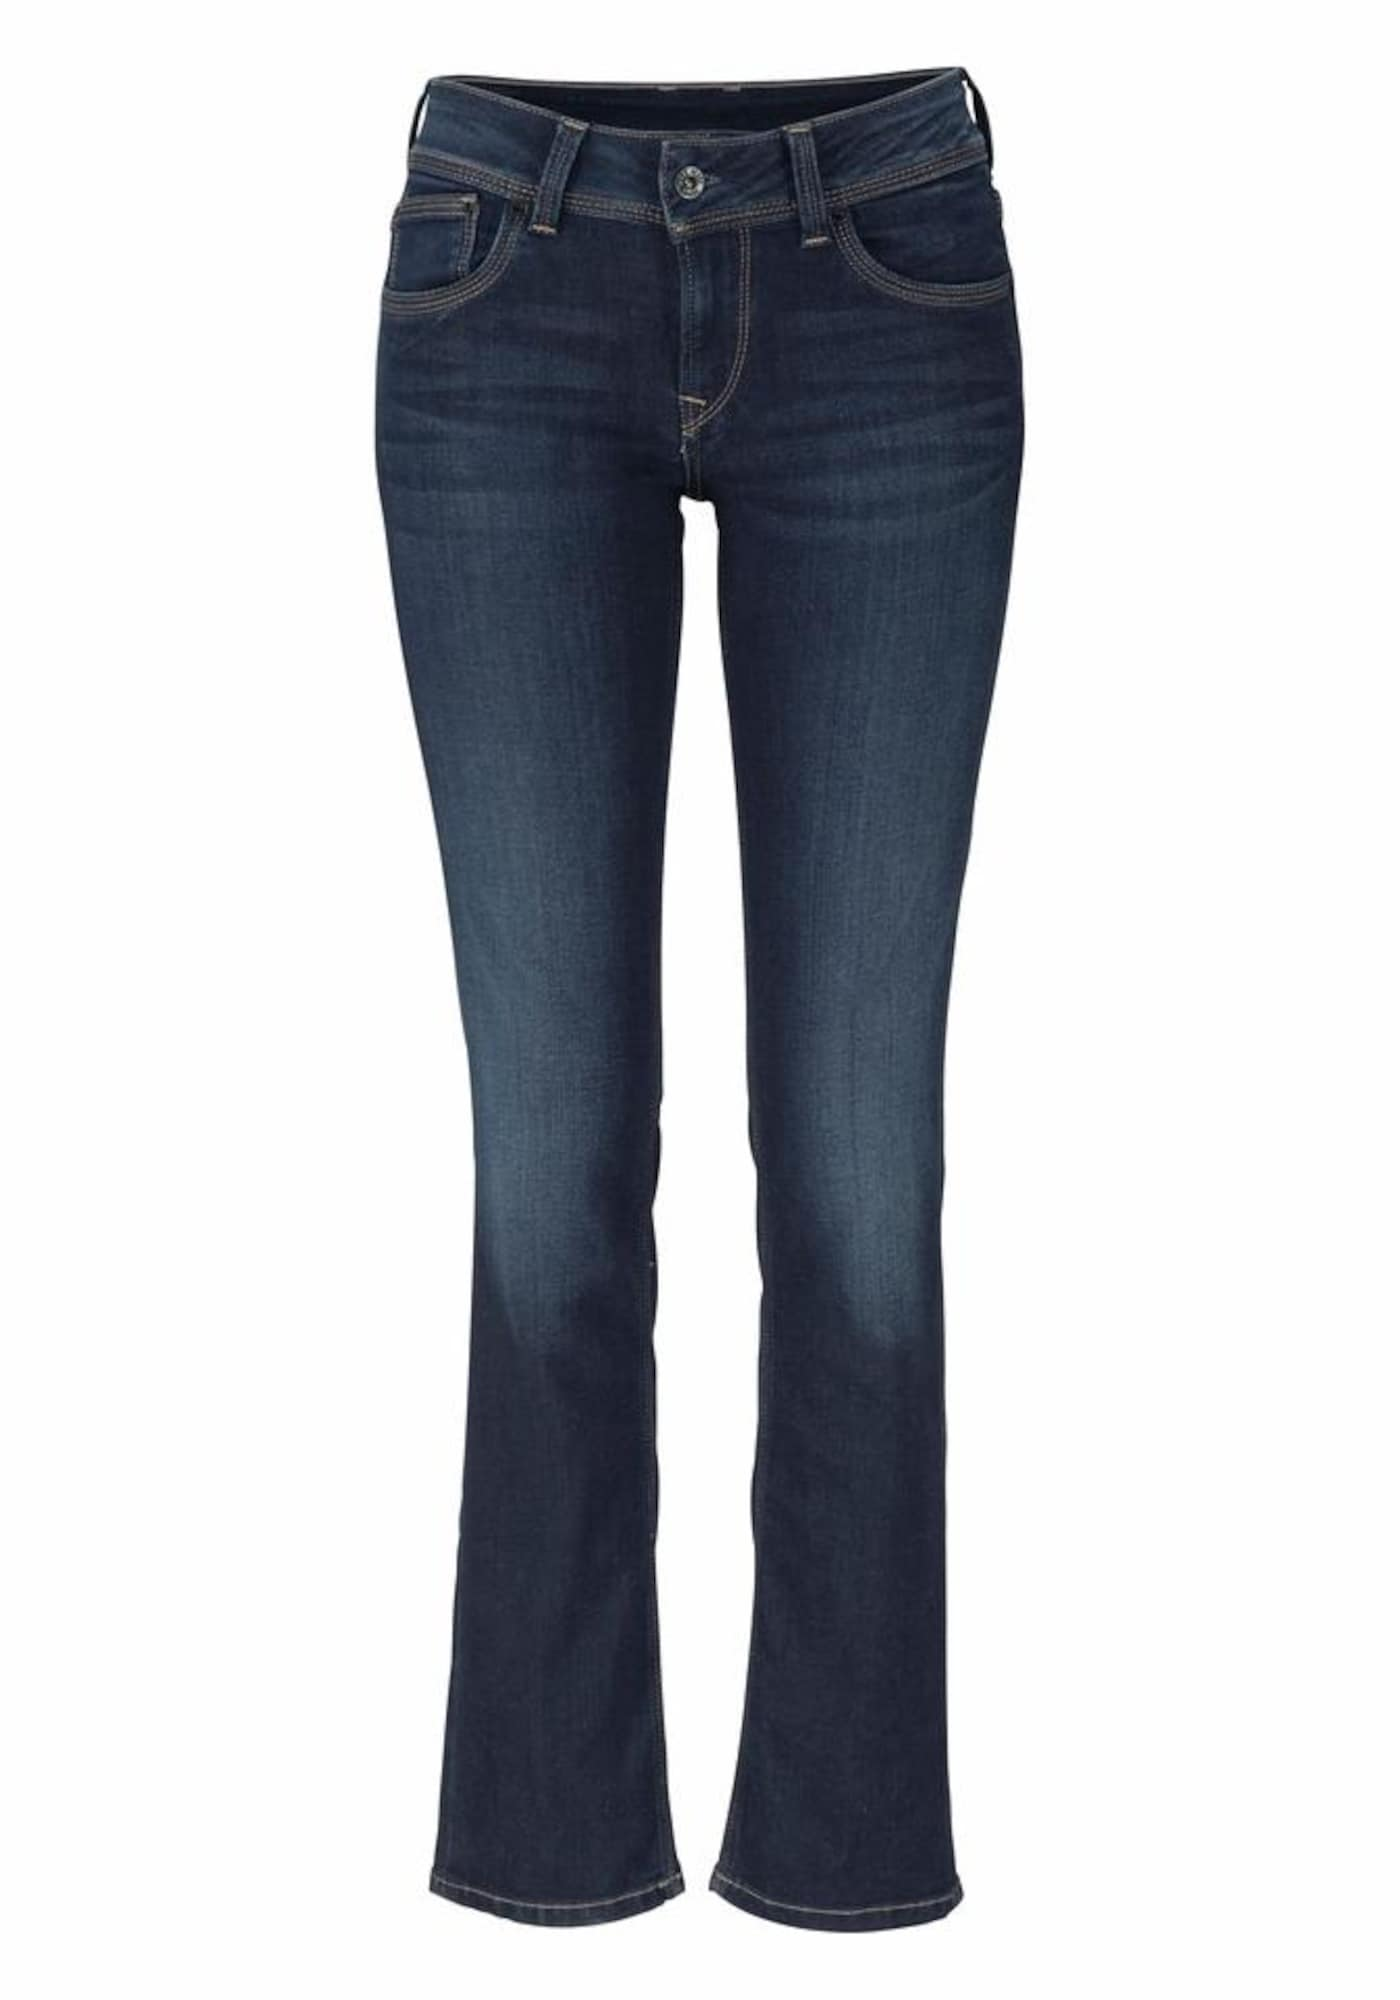 Pepe Jeans Dames Jeans Saturn donkerblauw